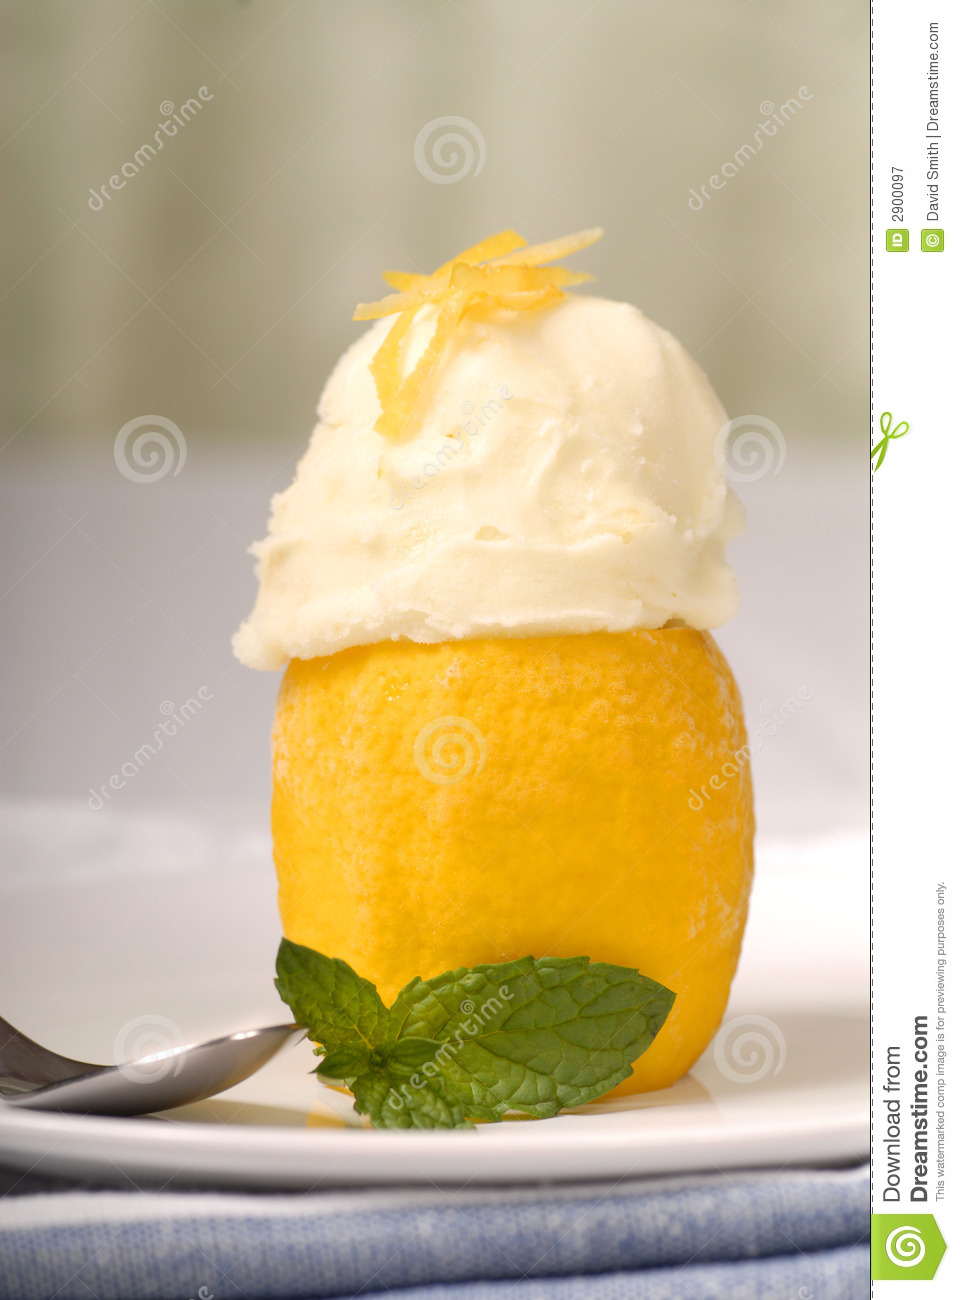 Lemon sorbet in a frozen lemon shell with mint.